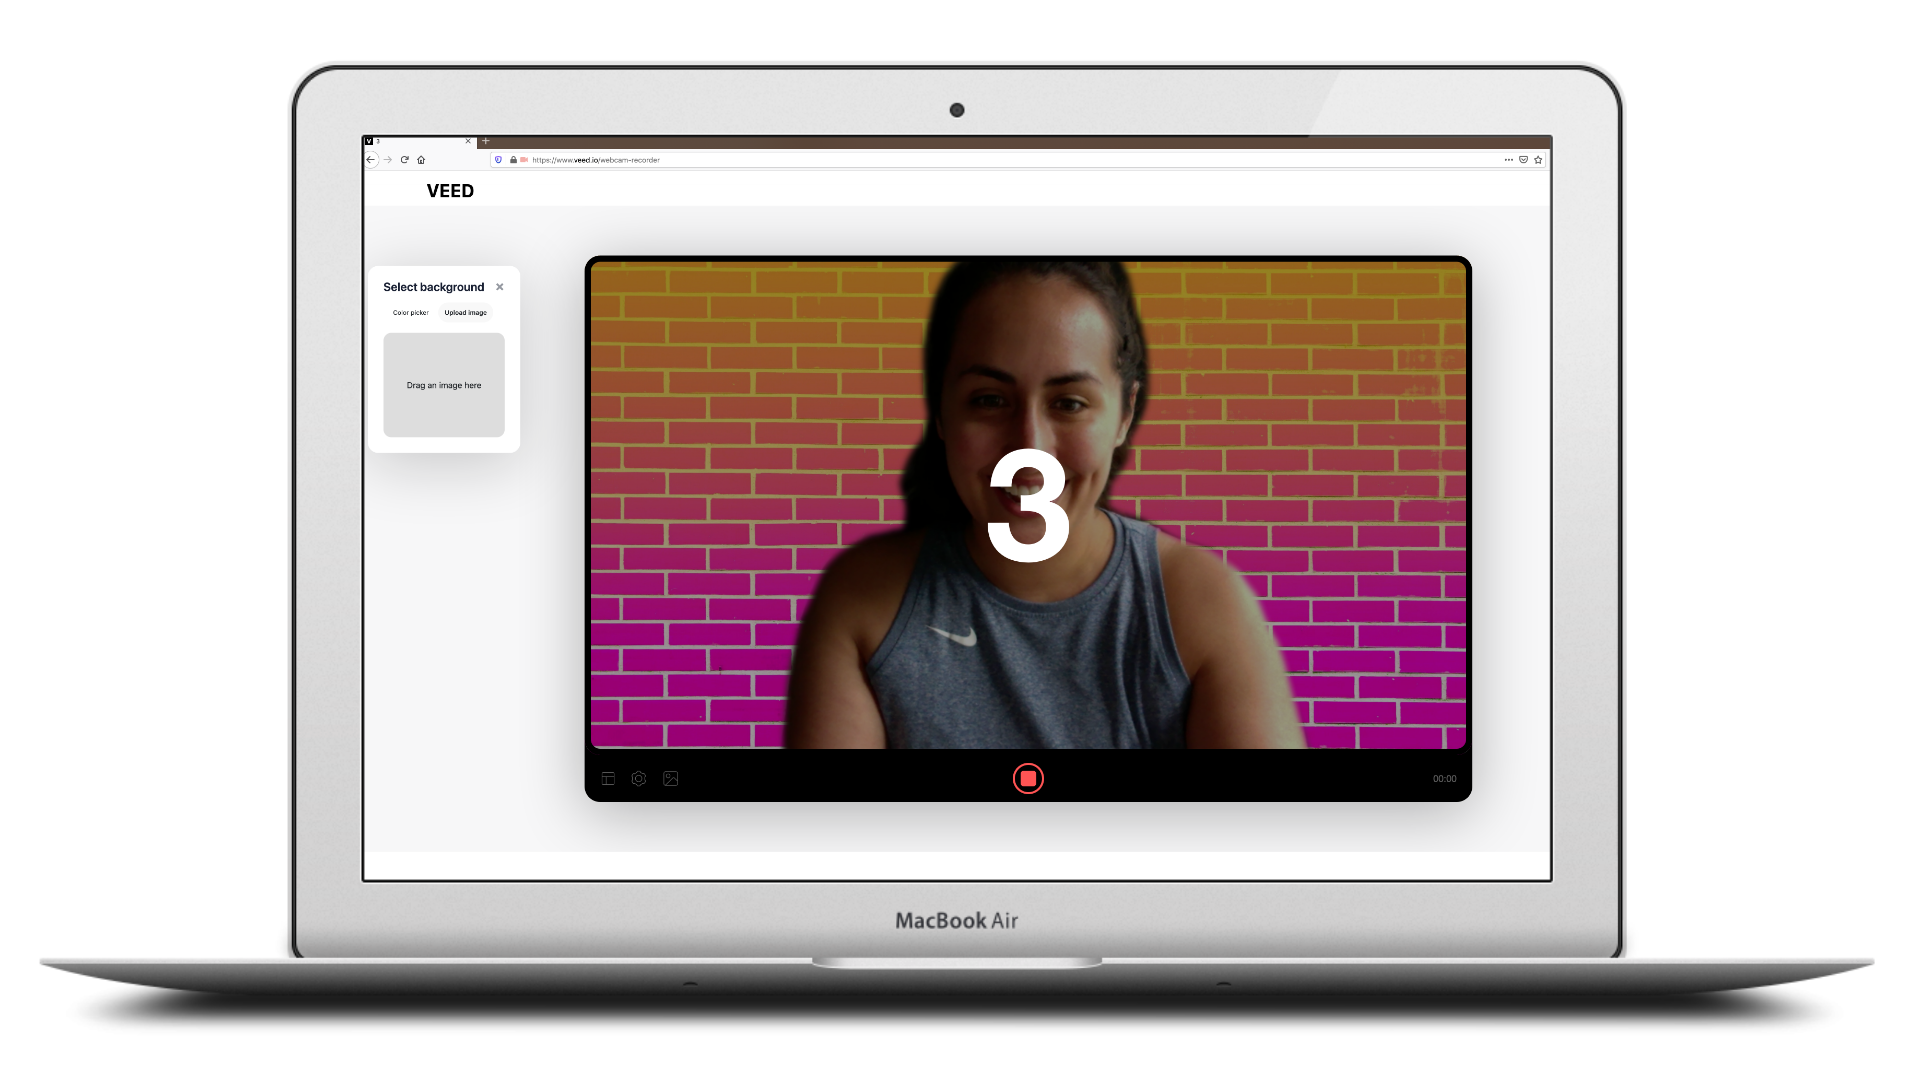 Video recording about to begin displaying a 3-second timer on the screen of a macbook air